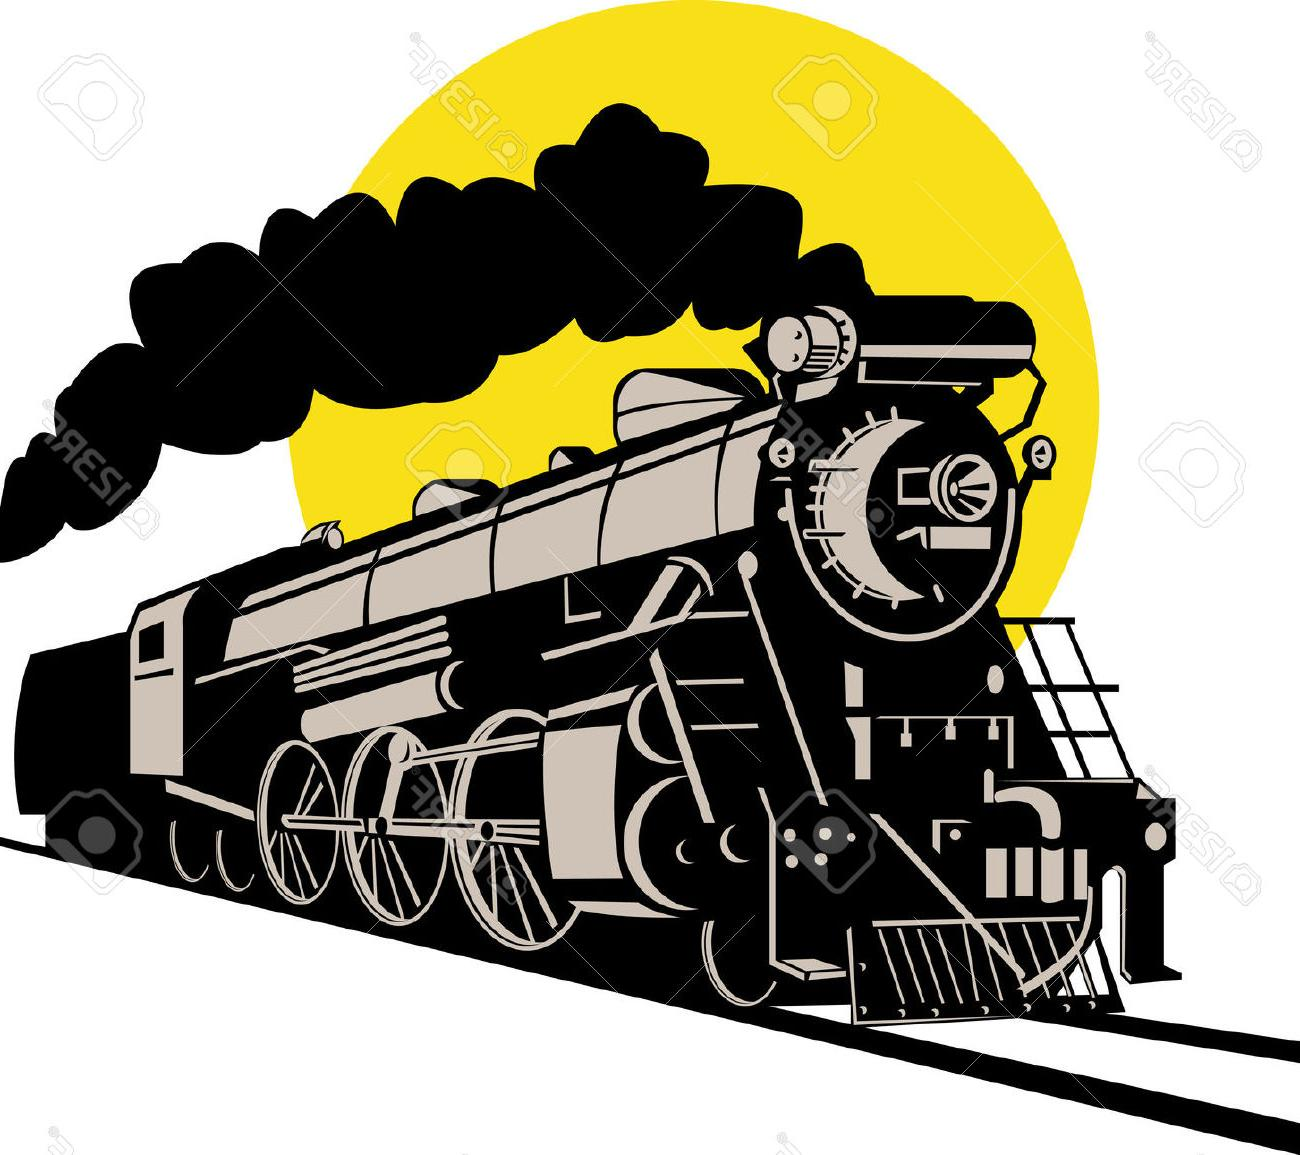 Train Images Cartoon | Free download on ClipArtMag